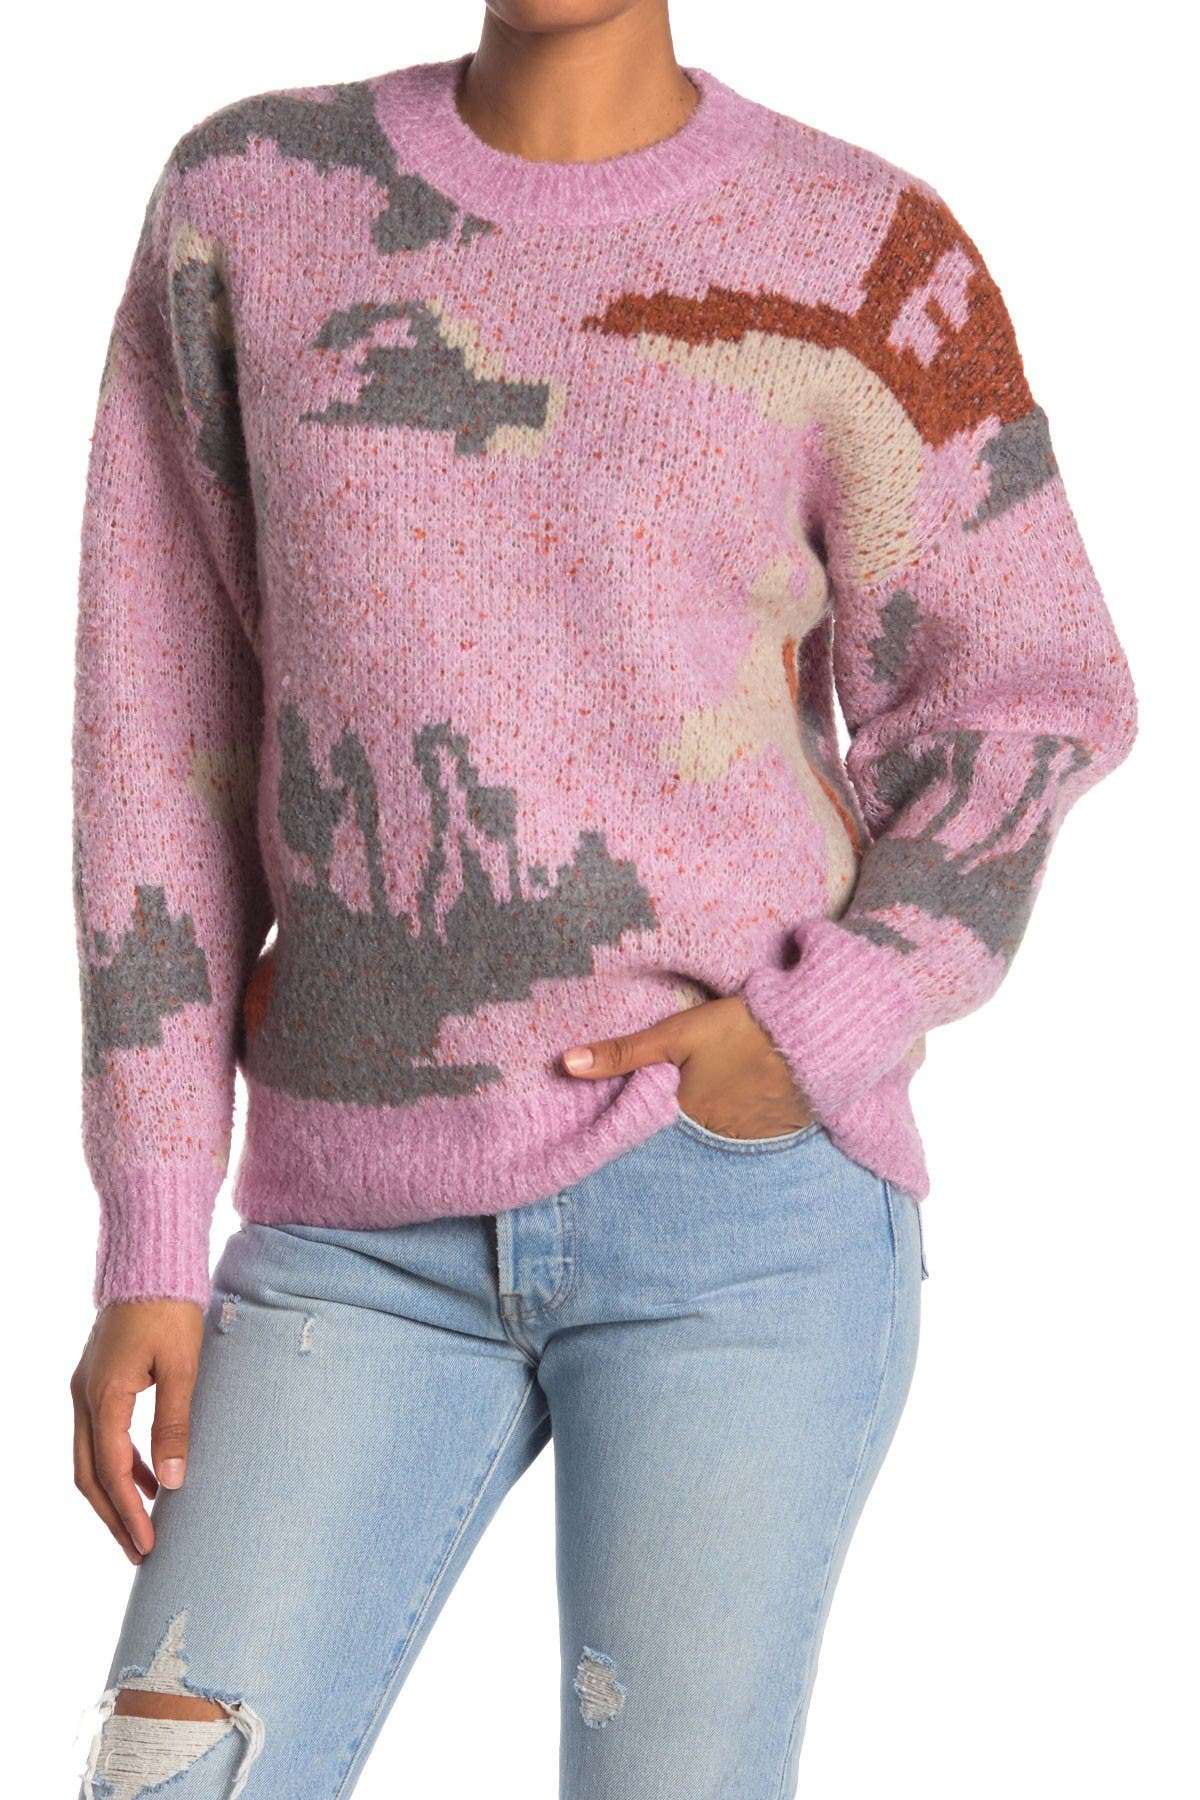 Image of Elodie Patterned Crew Neck Pullover Sweater